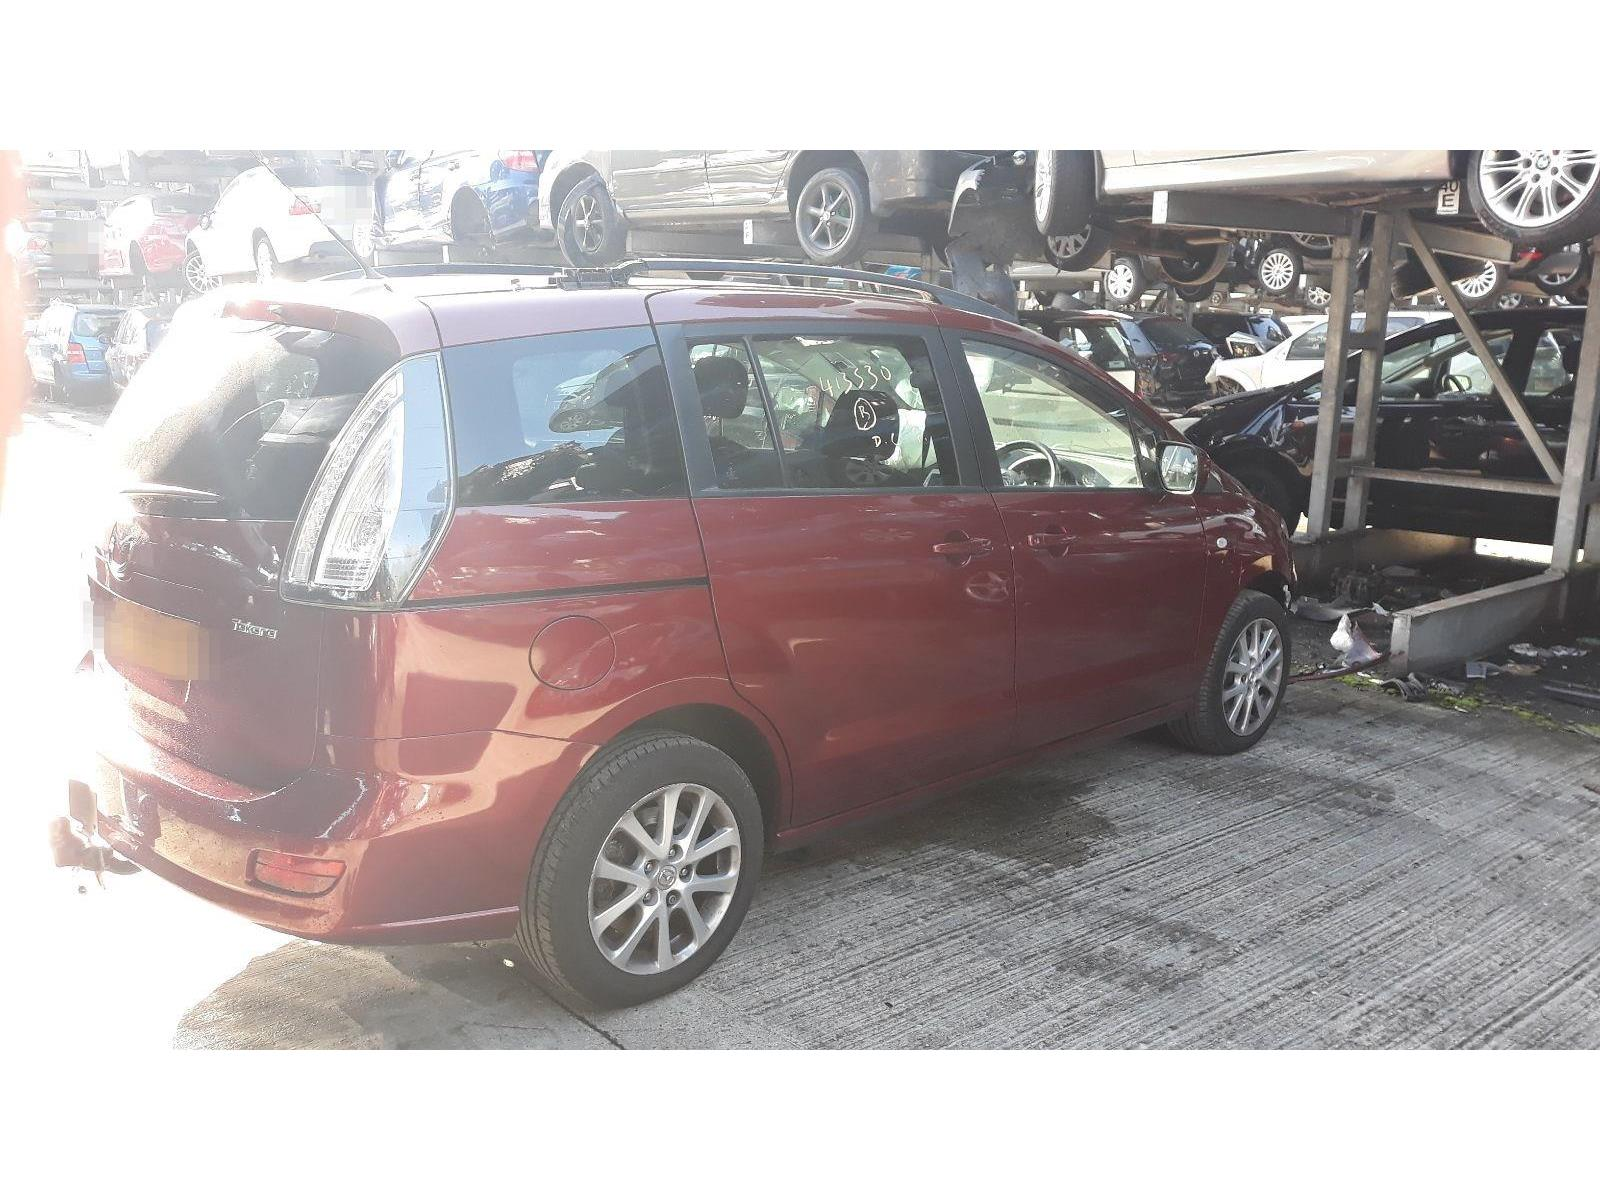 Mazda 5 2006 To 2010 Takara M.P.V. / scrap / salvage car for sale / auction  | Silverlake Autoparts